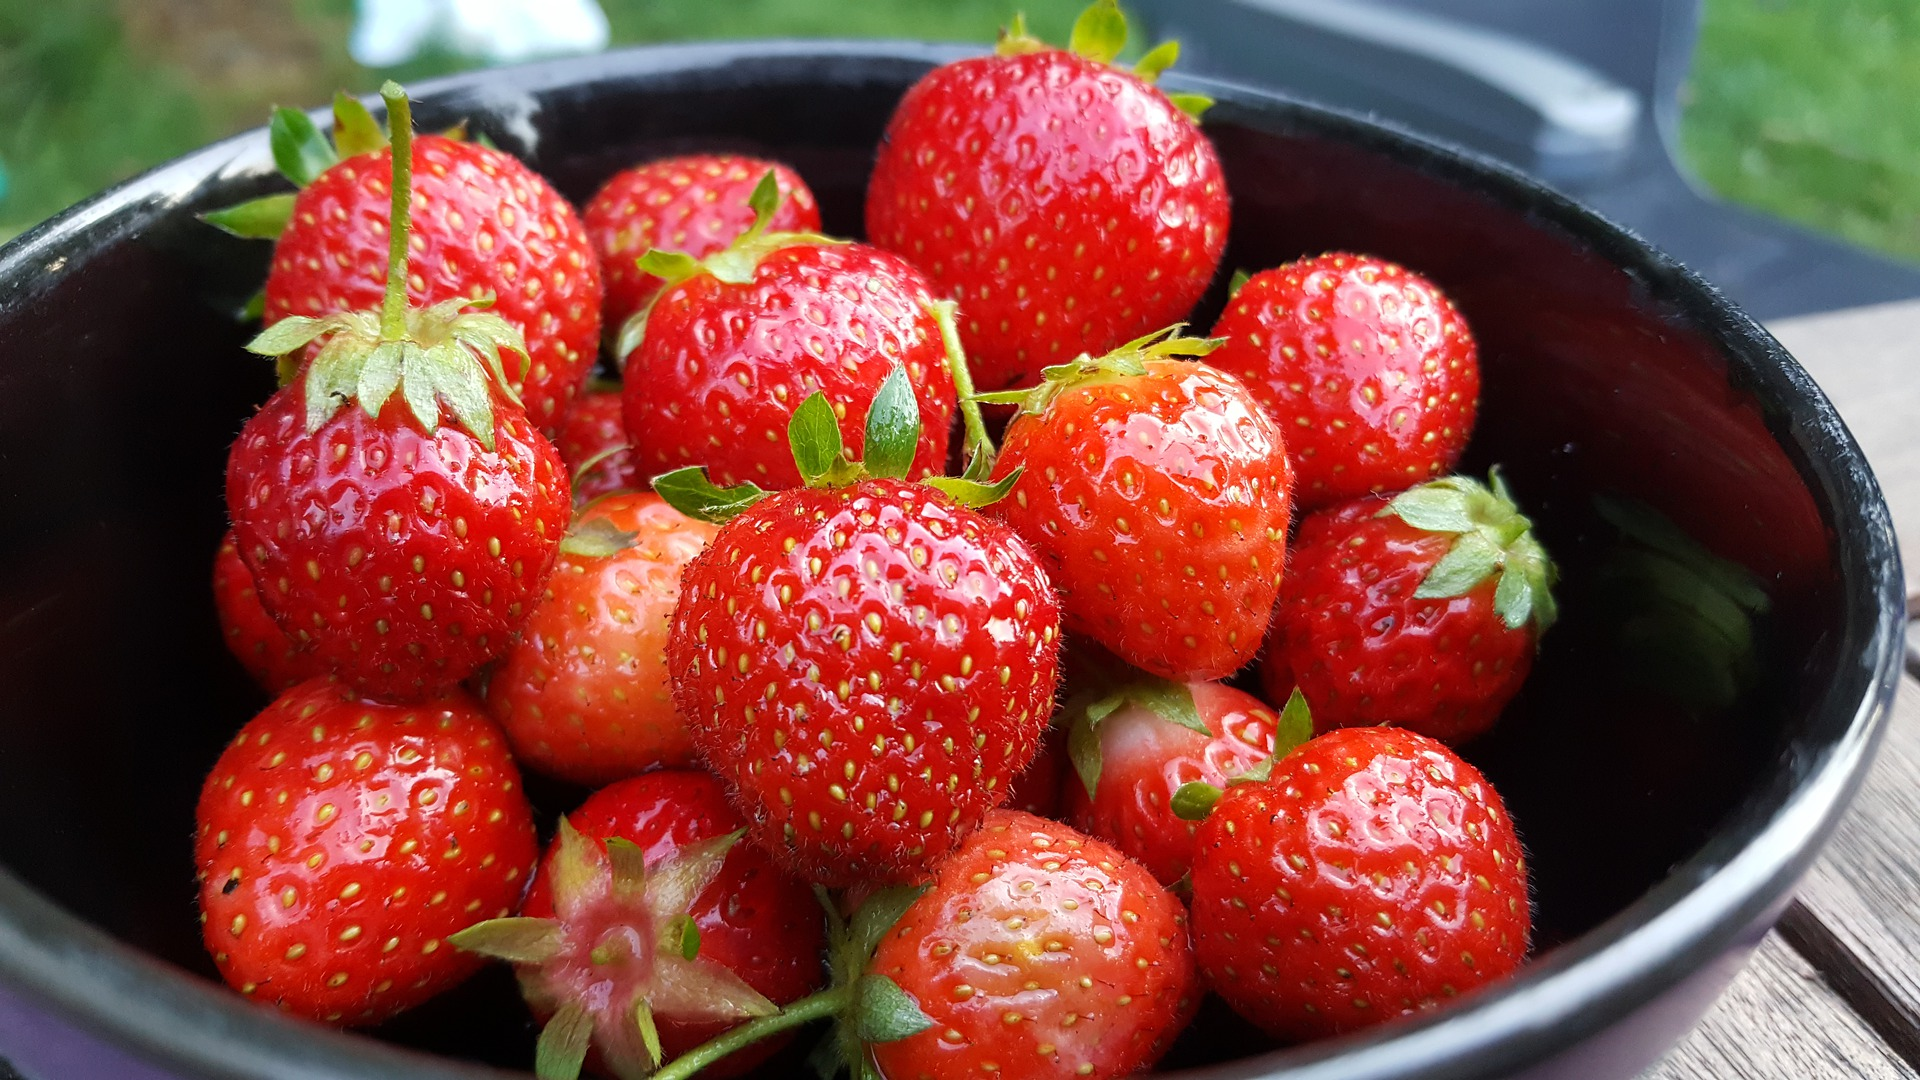 photo: a bowl of ripe strawberries